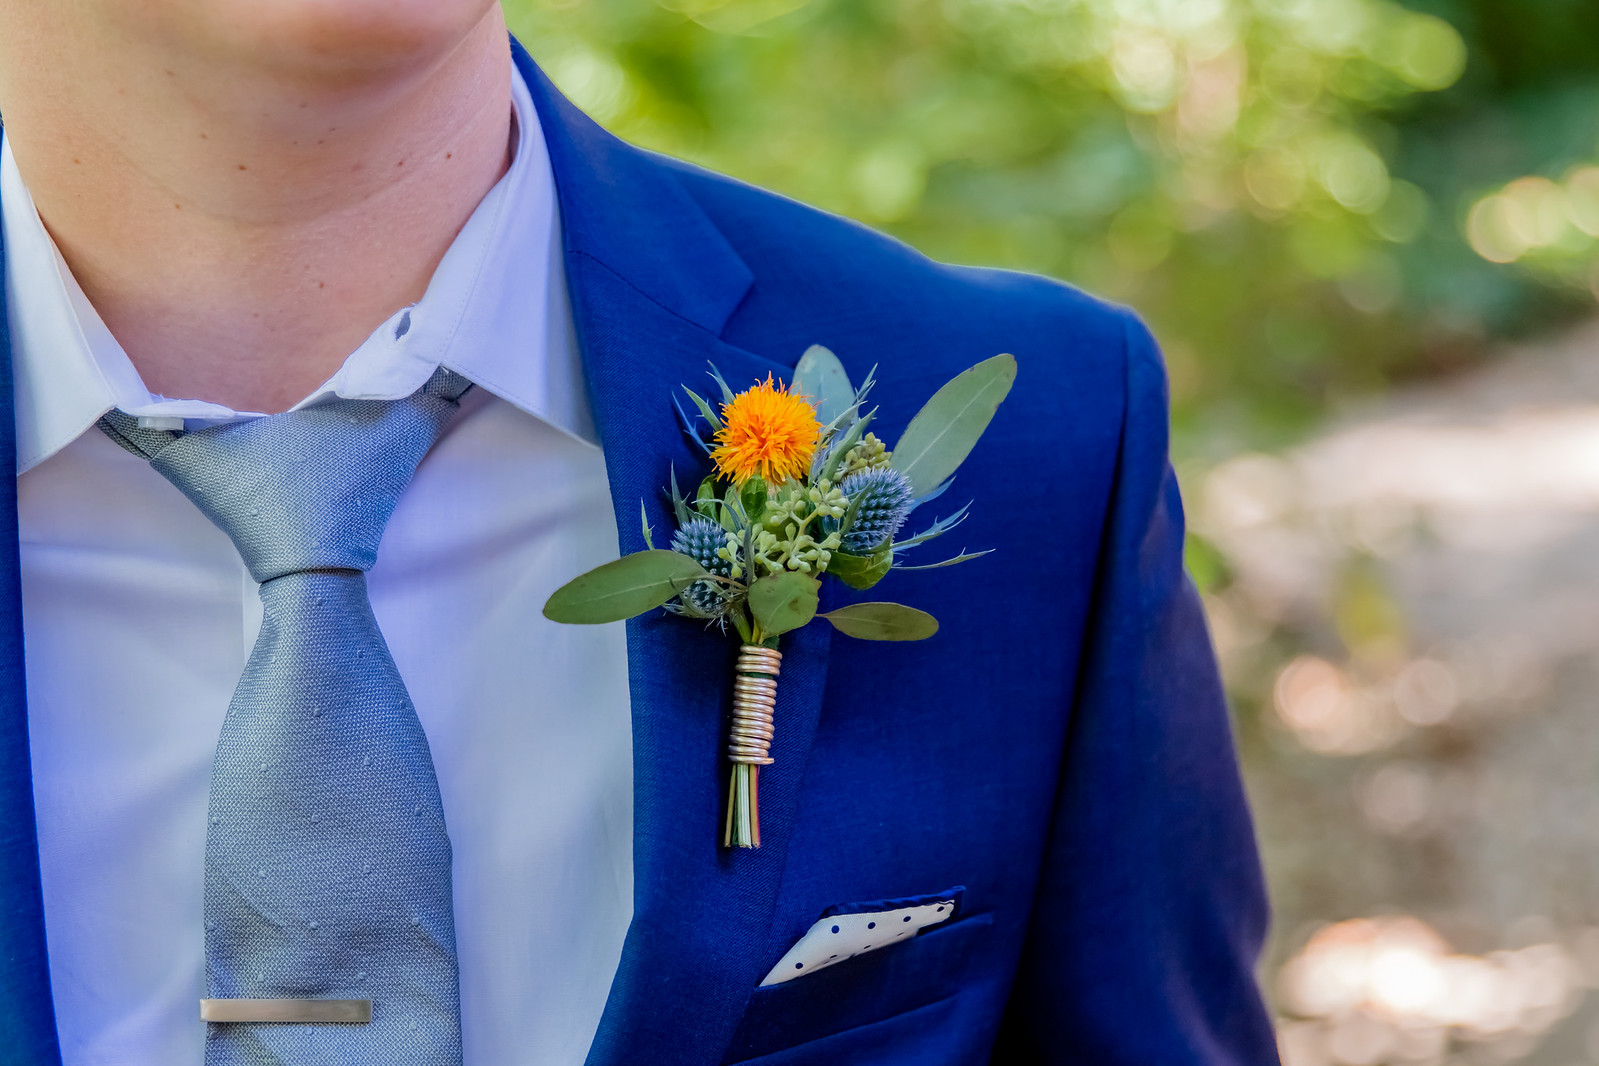 {Photos by: Weeping Willow Photography}